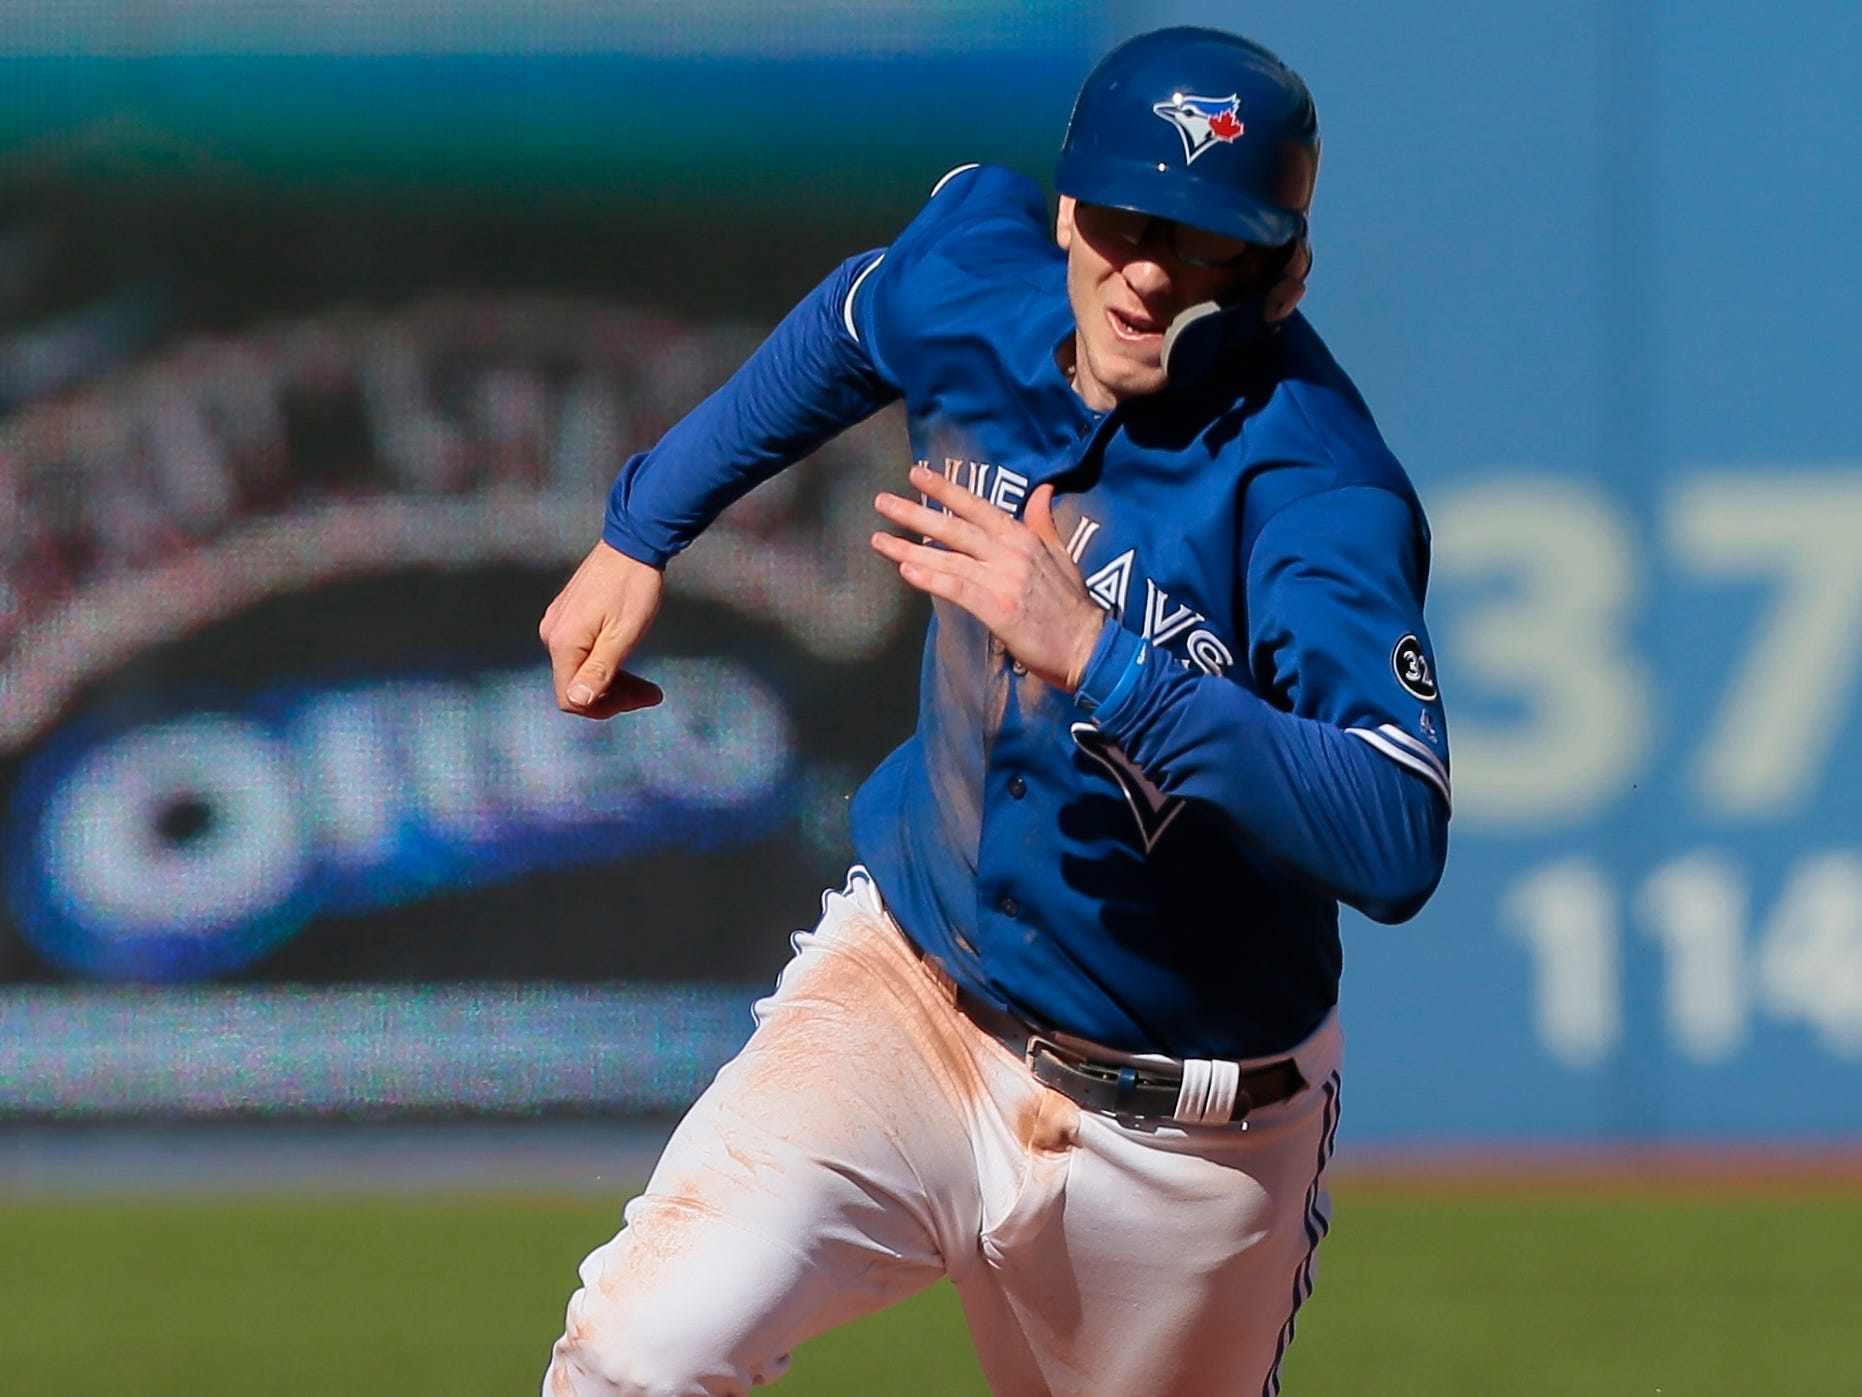 Sep 23, 2018; Toronto, Ontario, CAN; Toronto Blue Jays catcher Danny Jansen heads for third base on a double hit by Toronto Blue Jays shortstop Richard Urena (notpictured) in the eighth inning against the Tampa Bay Rays at Rogers Centre. Tampa Bay defeated Toronto. Mandatory Credit: John E. Sokolowski-USA TODAY Sports